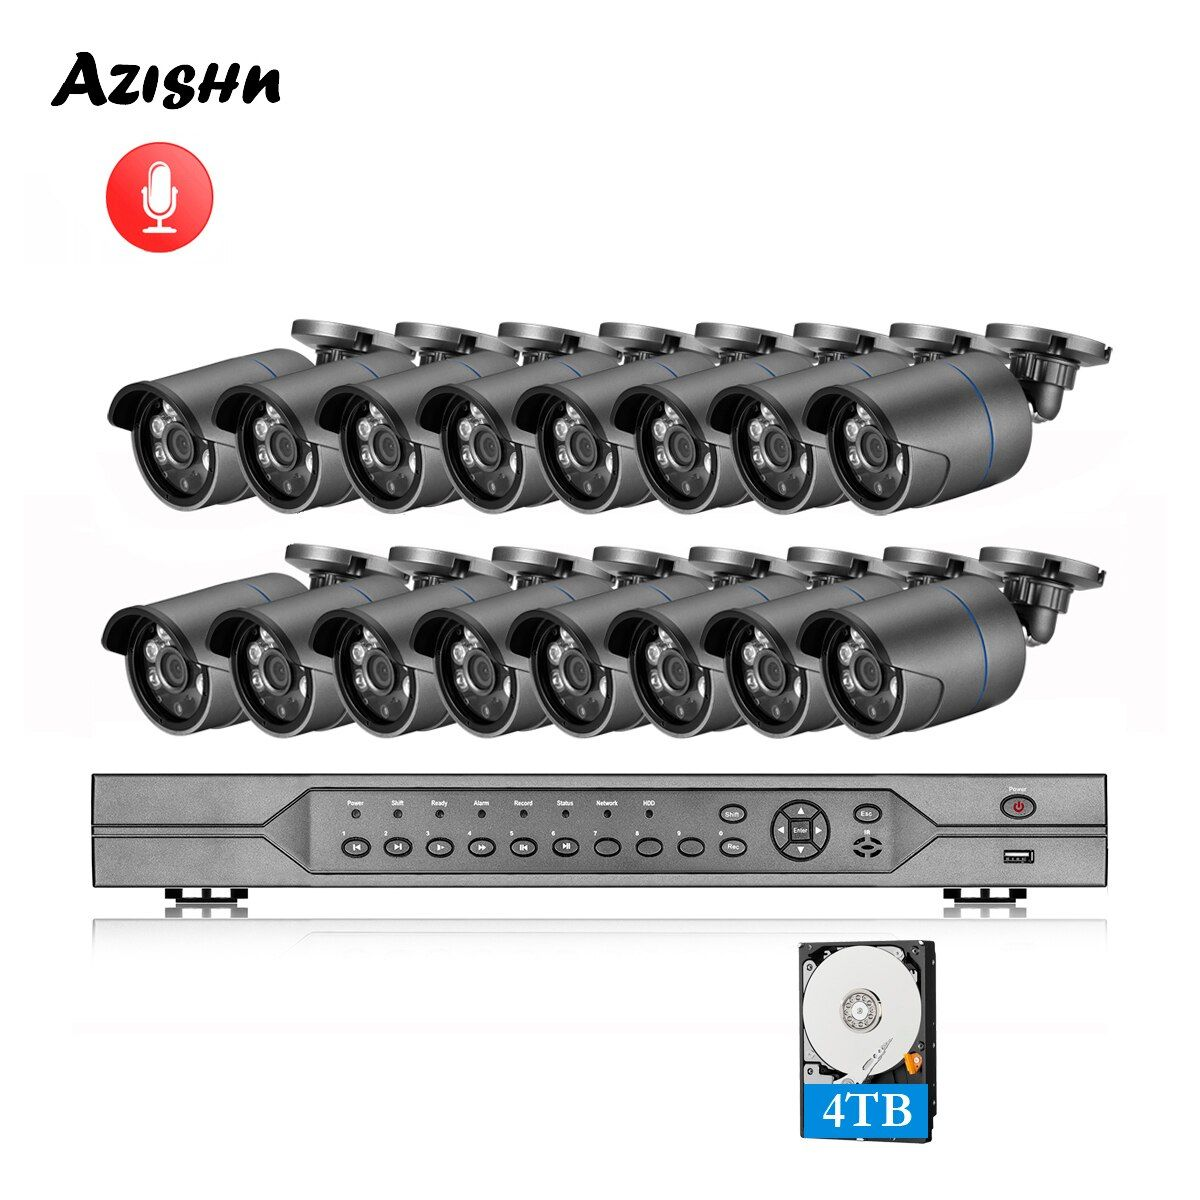 AZISHN H.265 16CH POE NVR Kit 4MP CCTV Kamera System 4MP Im Freien Wasserdichte Audio IP Kamera POE Sicherheit Video Überwachung set